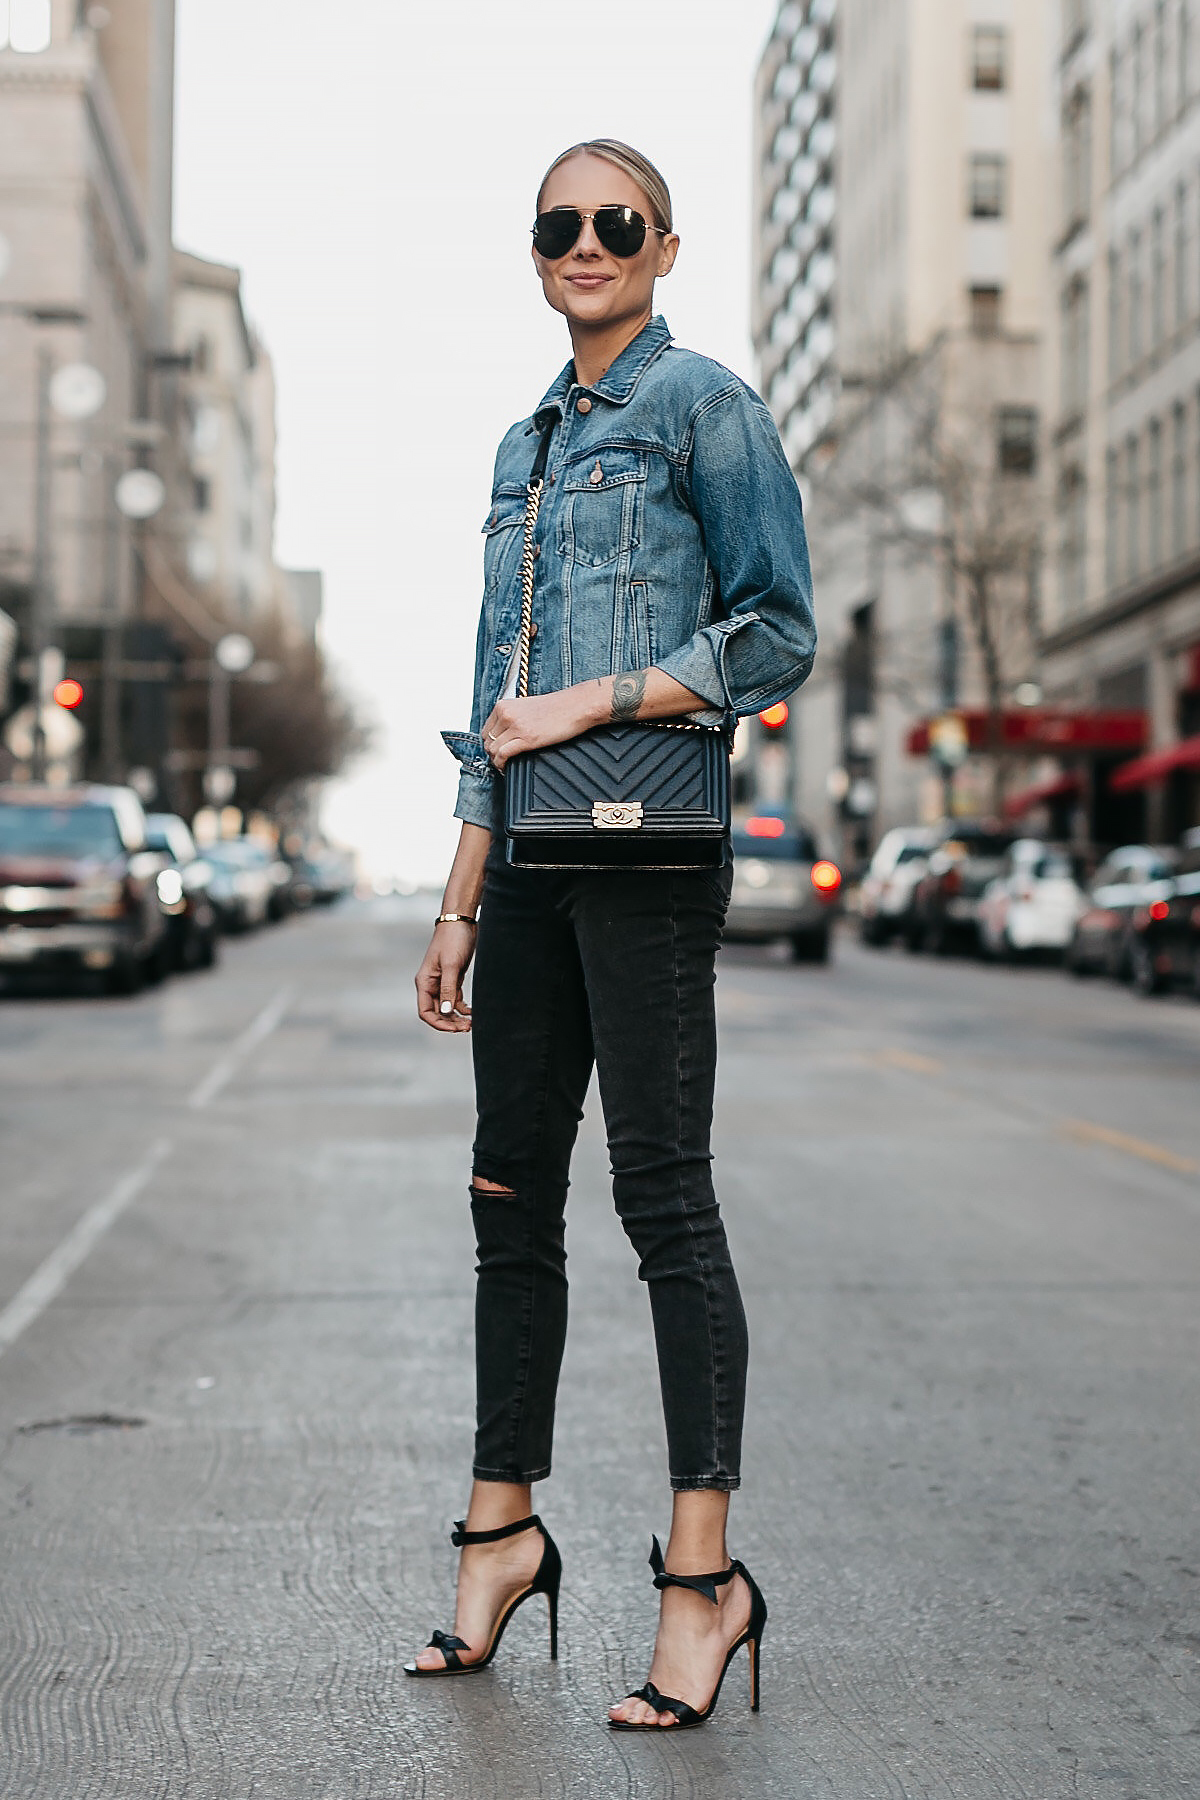 Blonde Woman Wearing Joes Jeans Black Ripped Skinny Jeans Denim Jacket Chanel Black Boy Bag Alexandre Birman Black Bow Heels Celine Aviator Sunglasses Fashion Jackson Dallas Blogger Fashion Blogger Street Style